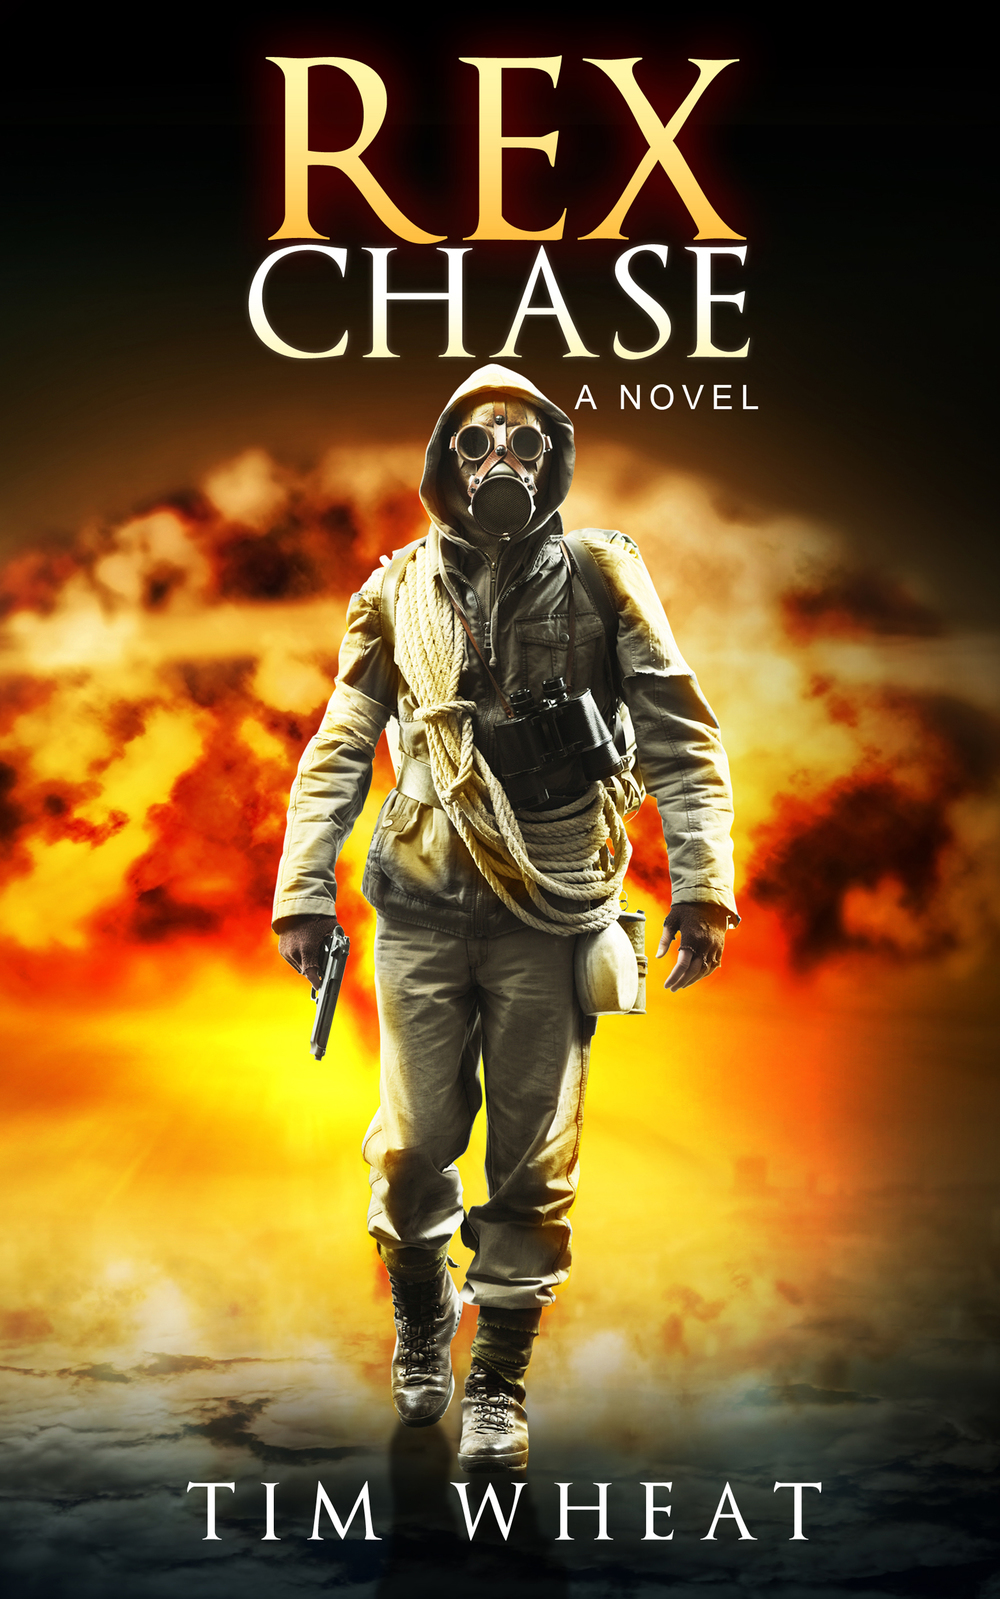 Join the other 10,000+ readers who've downloaded Rex Chase on Amazon.com!  CLICK HERE!